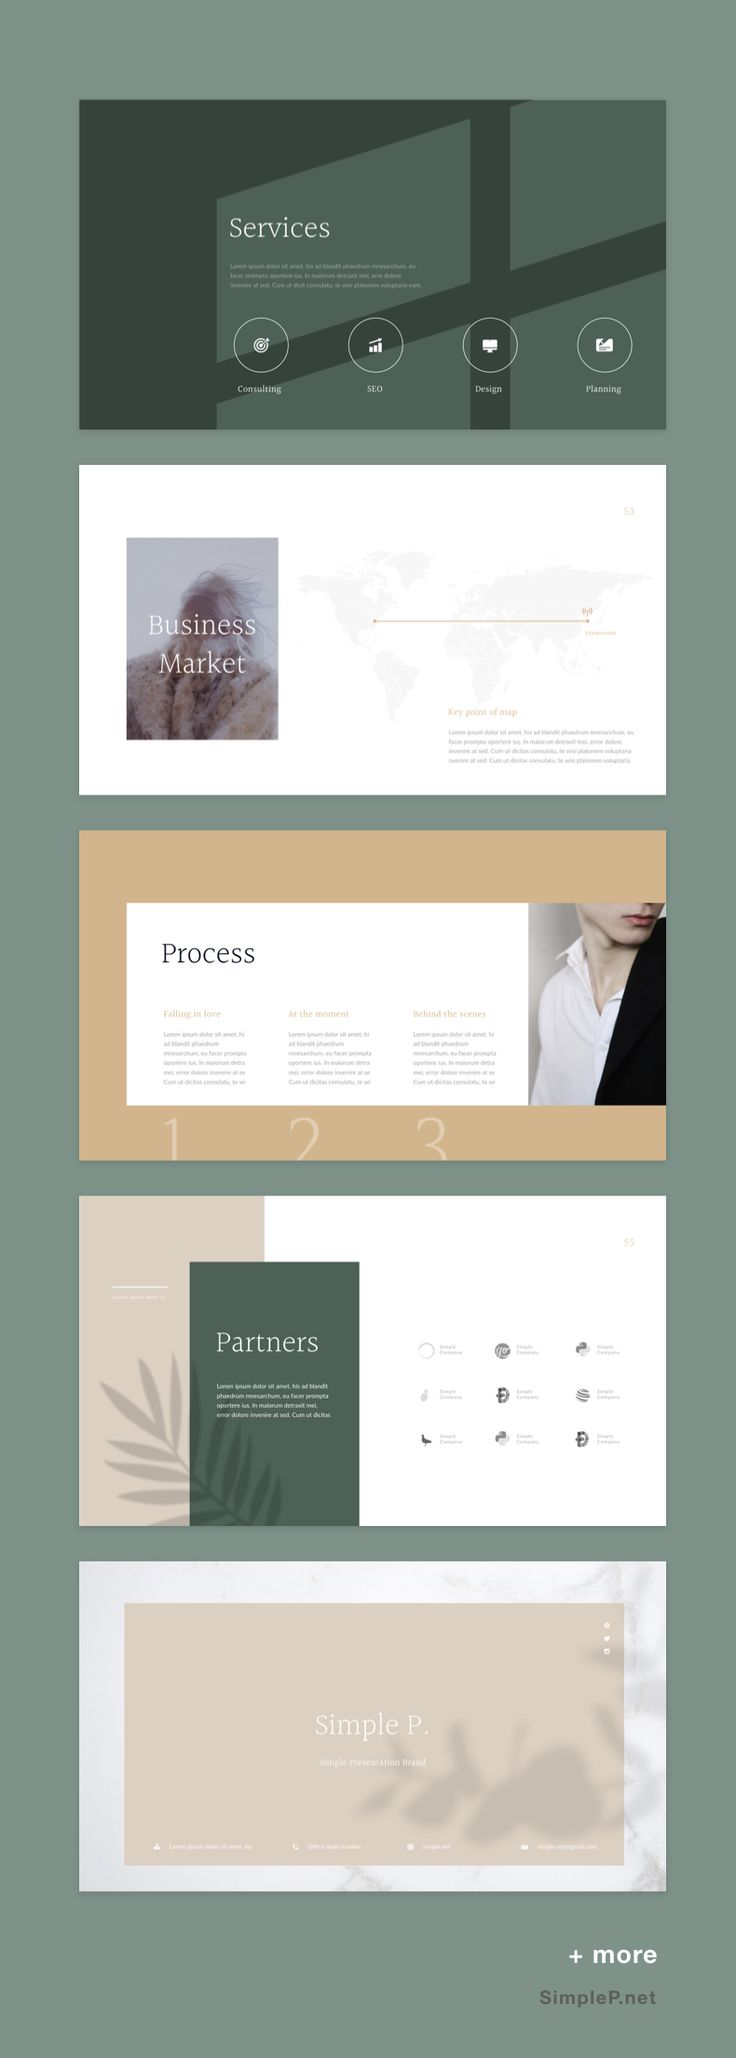 Simple solutions, GLORY Presentation PowerPoint Te…